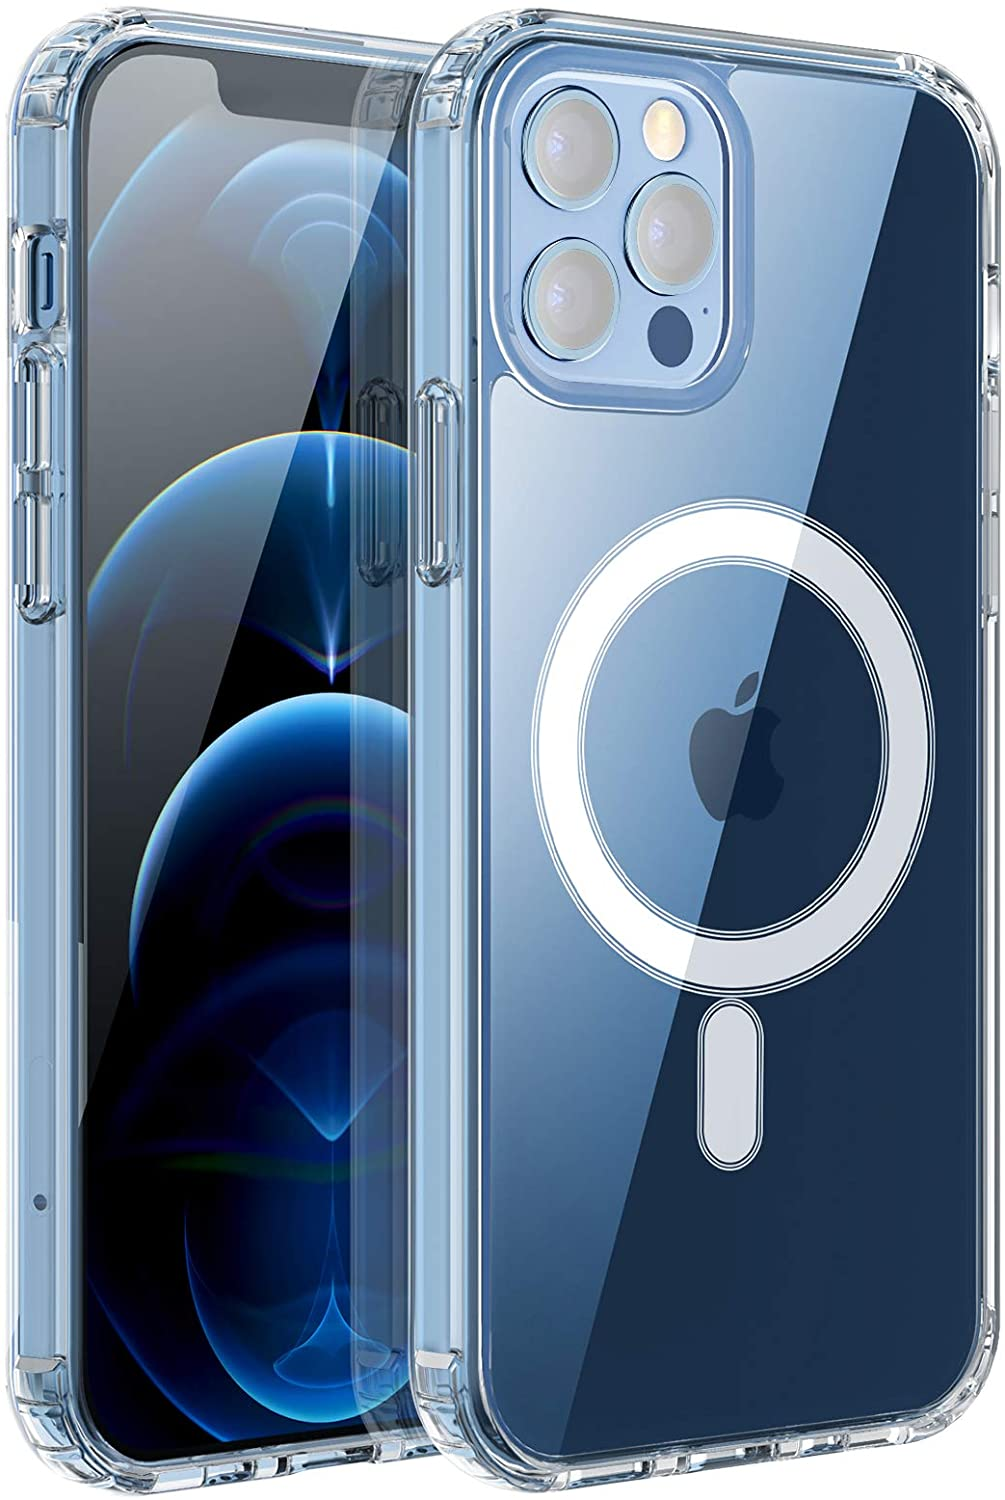 RESTONE Clear Magnetic Case for iPhone 12/iPhone 12 Pro